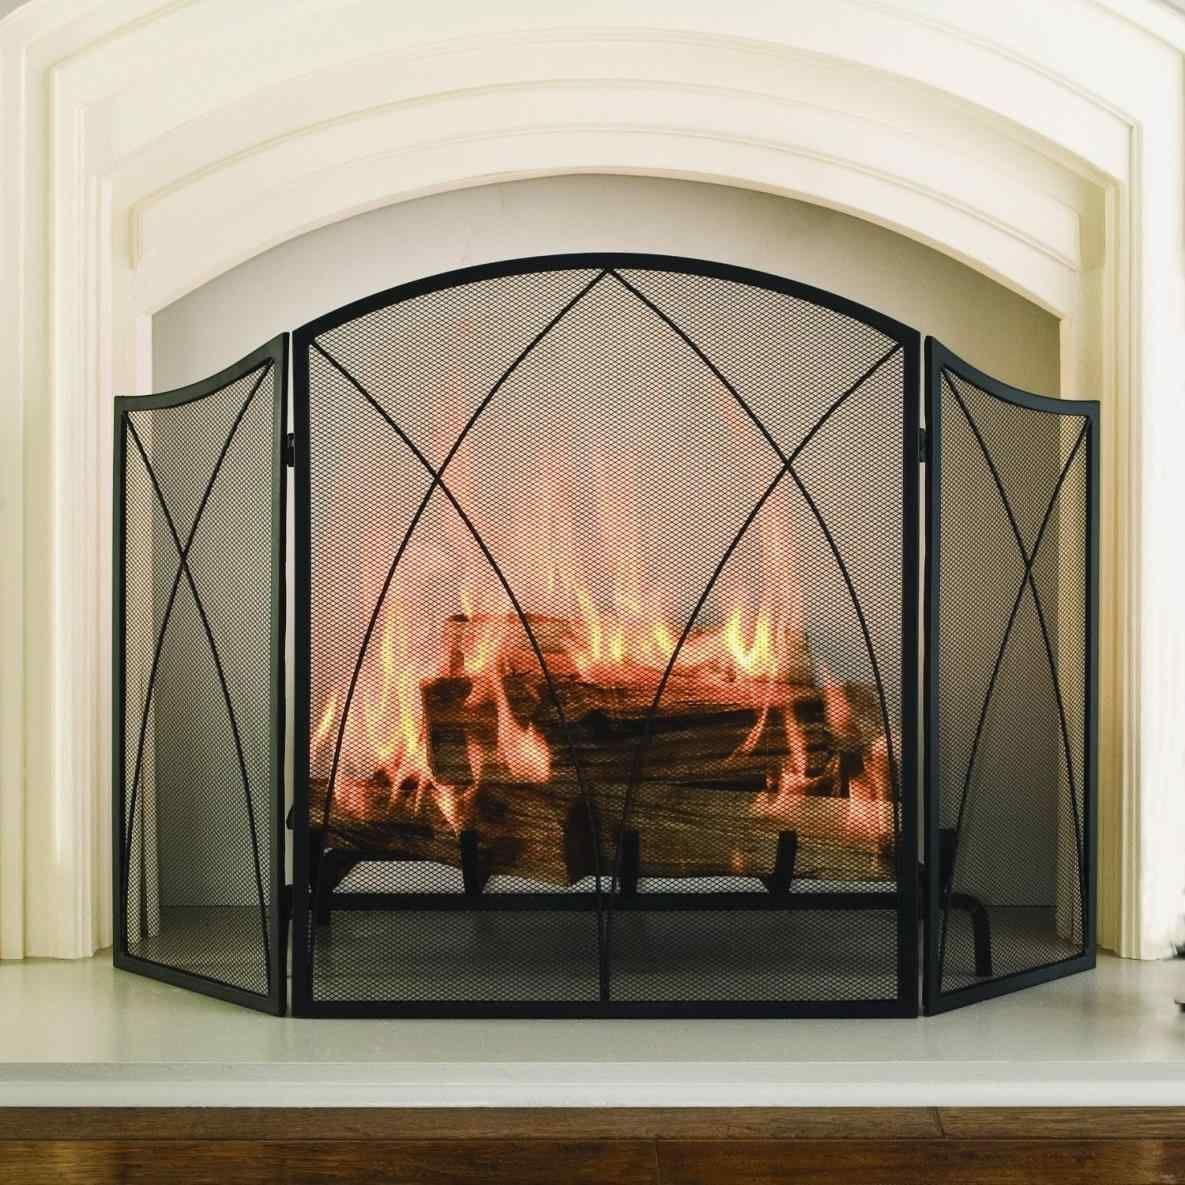 Arched Fireplace Screen Elegant 11 Best Fancy Fireplace Screens Design and Decor Ideas